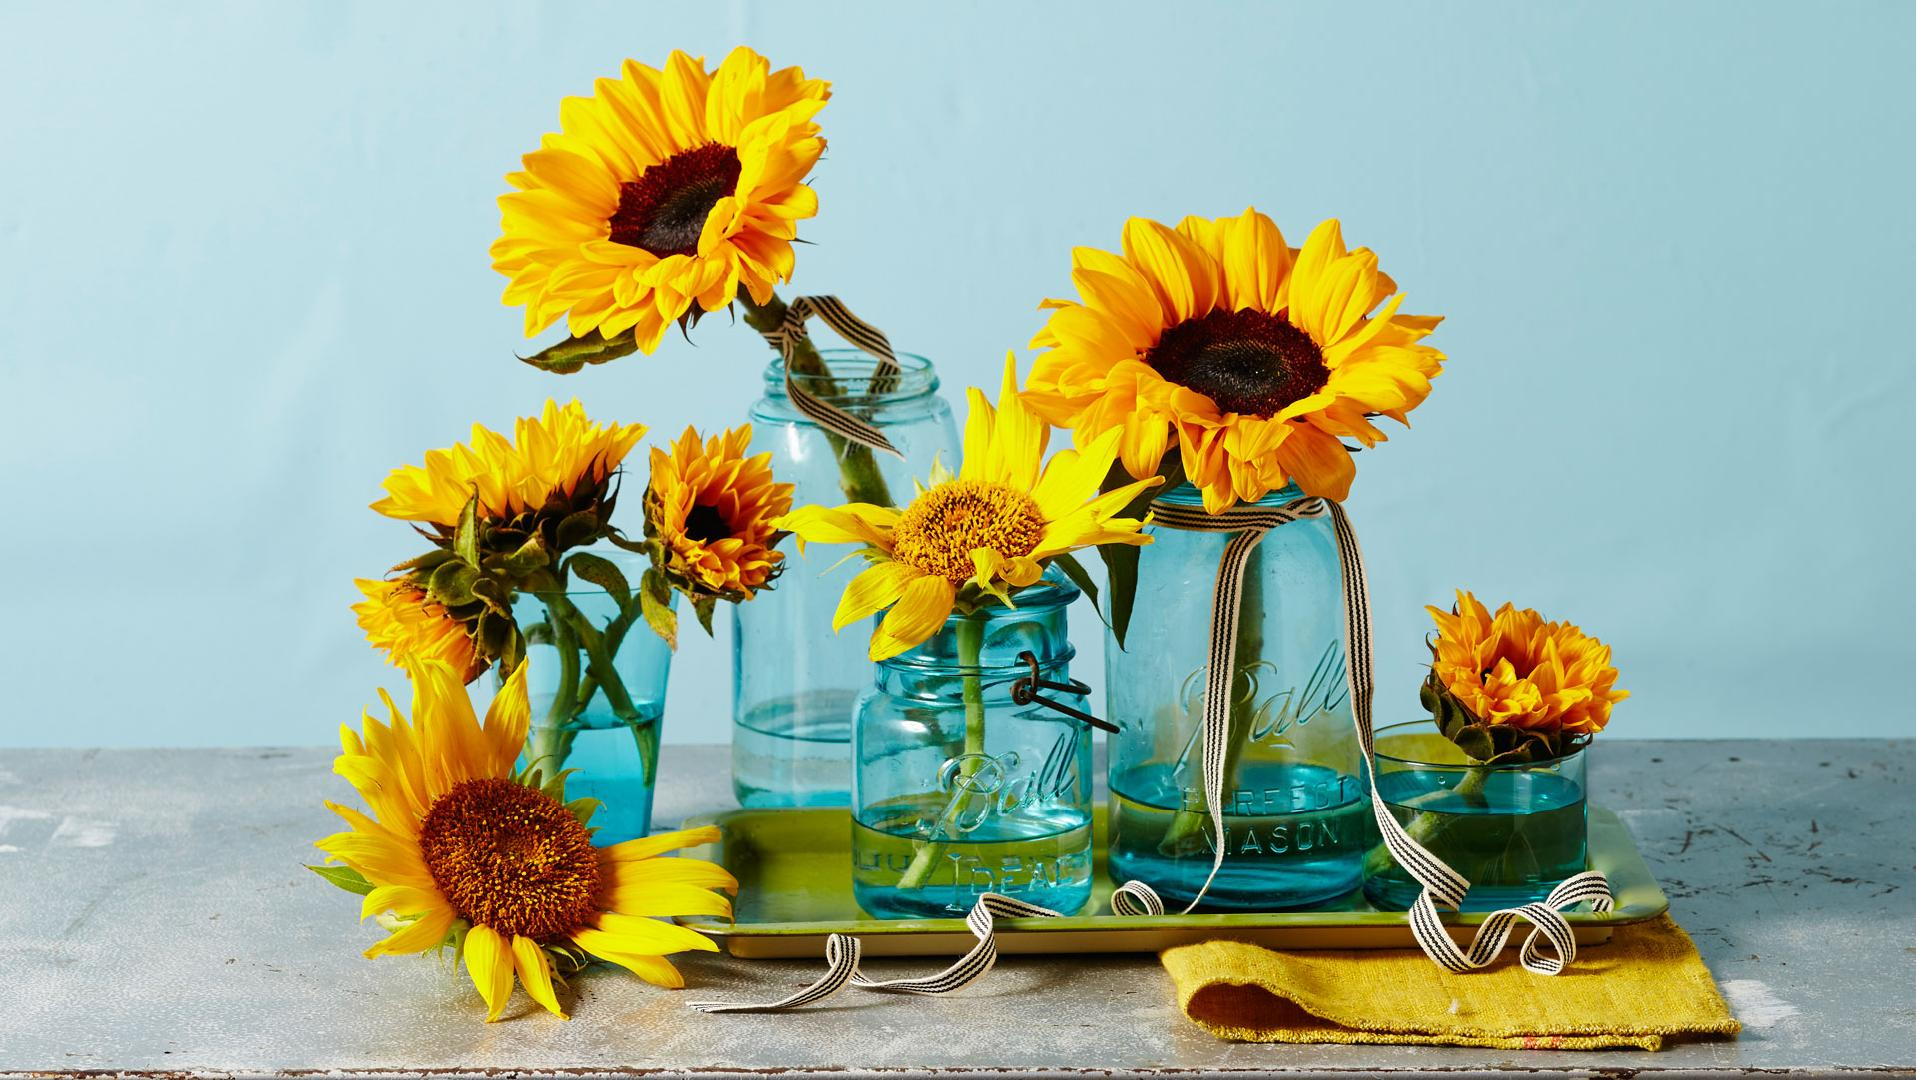 These Sunflower Centerpieces Will Brighten Up Your Breakfast Table - Southern Living  sc 1 st  Southern Living & These Sunflower Centerpieces Will Brighten Up Your Breakfast Table ...